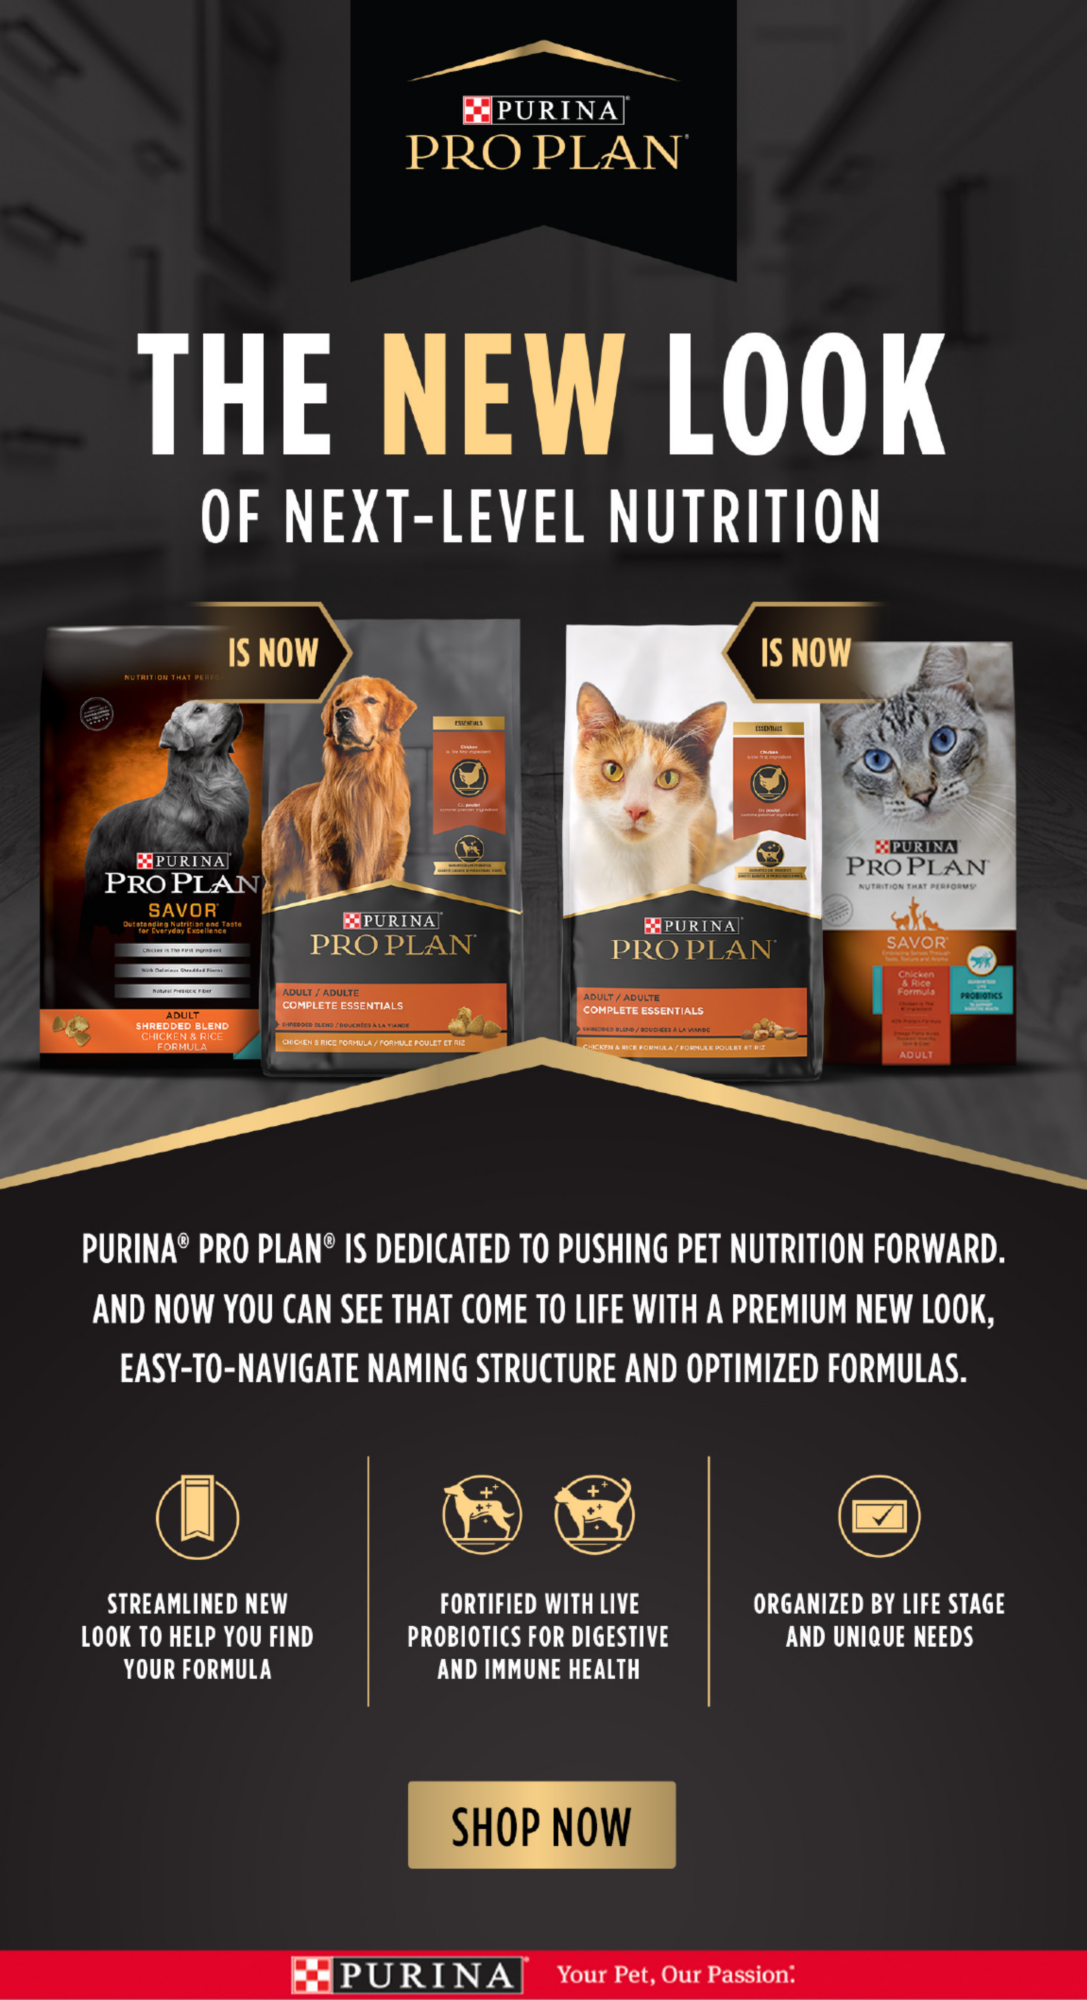 PURINA PRO PLAN VENDOR PAGE (Dog/Cat)